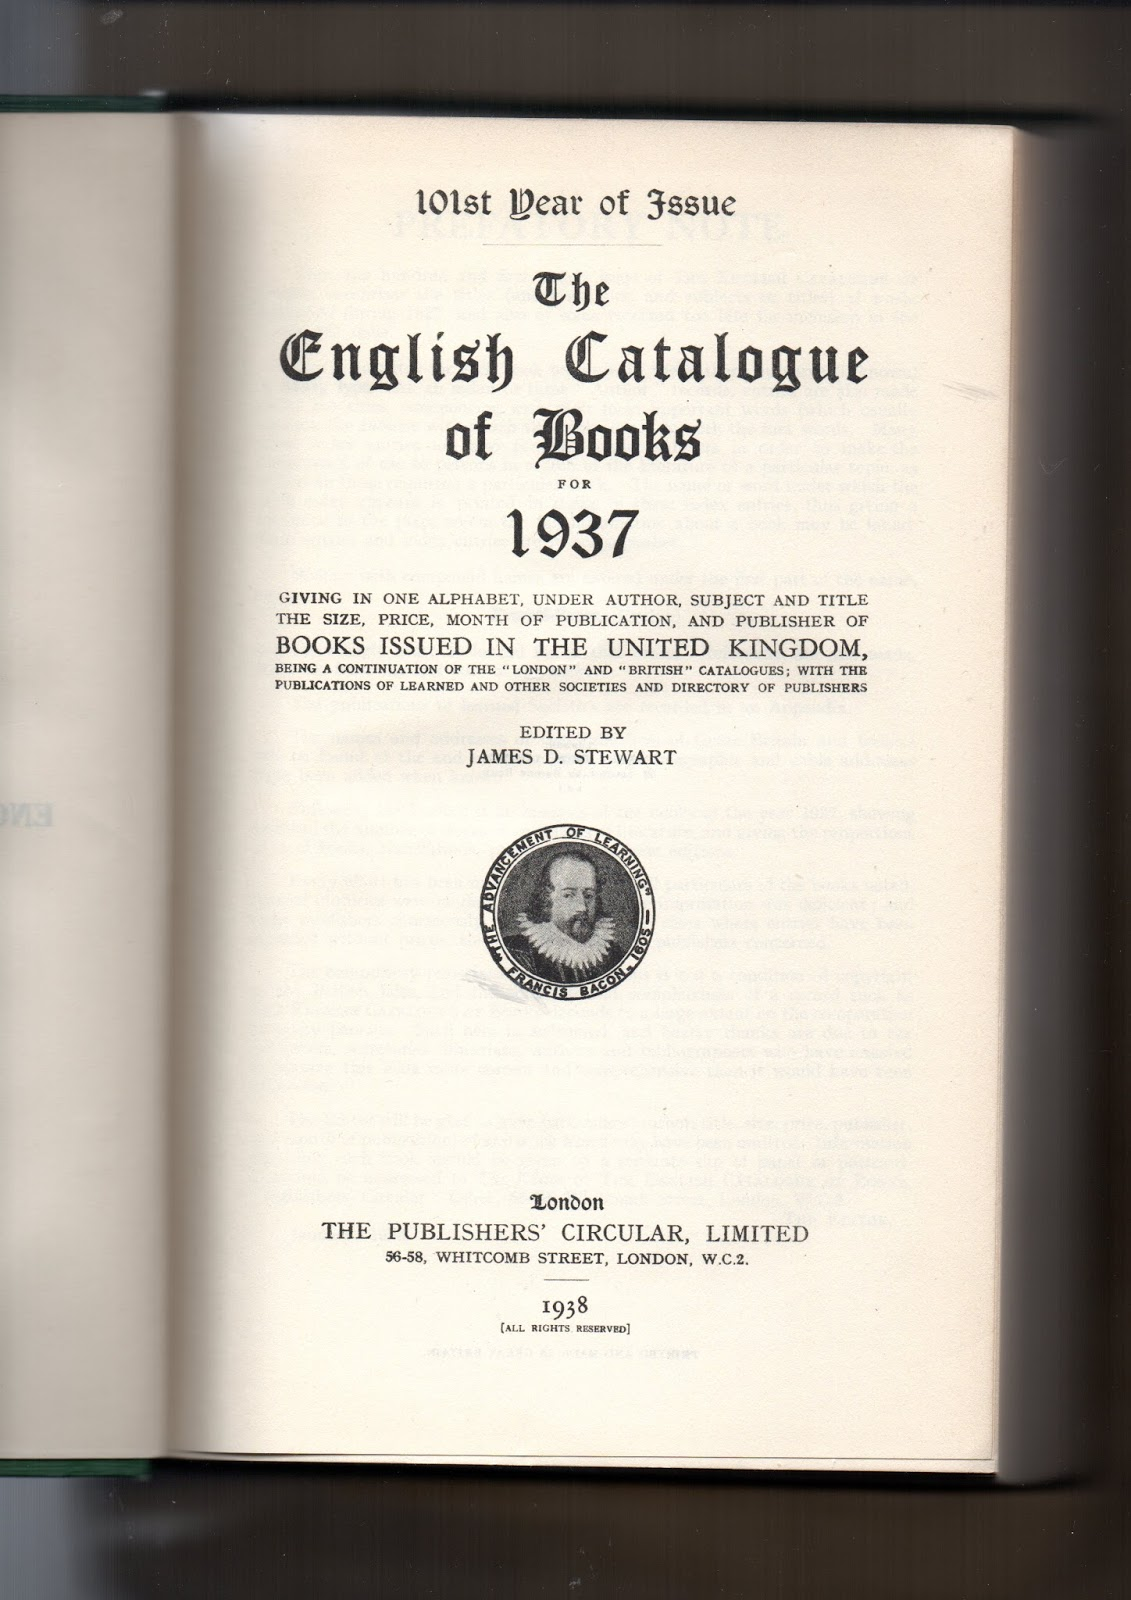 whole english catalog essay The introductory paragraph the paragraph that begins an essay causes students the most trouble, yet carries the most importance although its precise construction varies from genre to genre (and from essay to essay), good introductory paragraphs generally accomplish the same tasks and follow a few basic patterns.